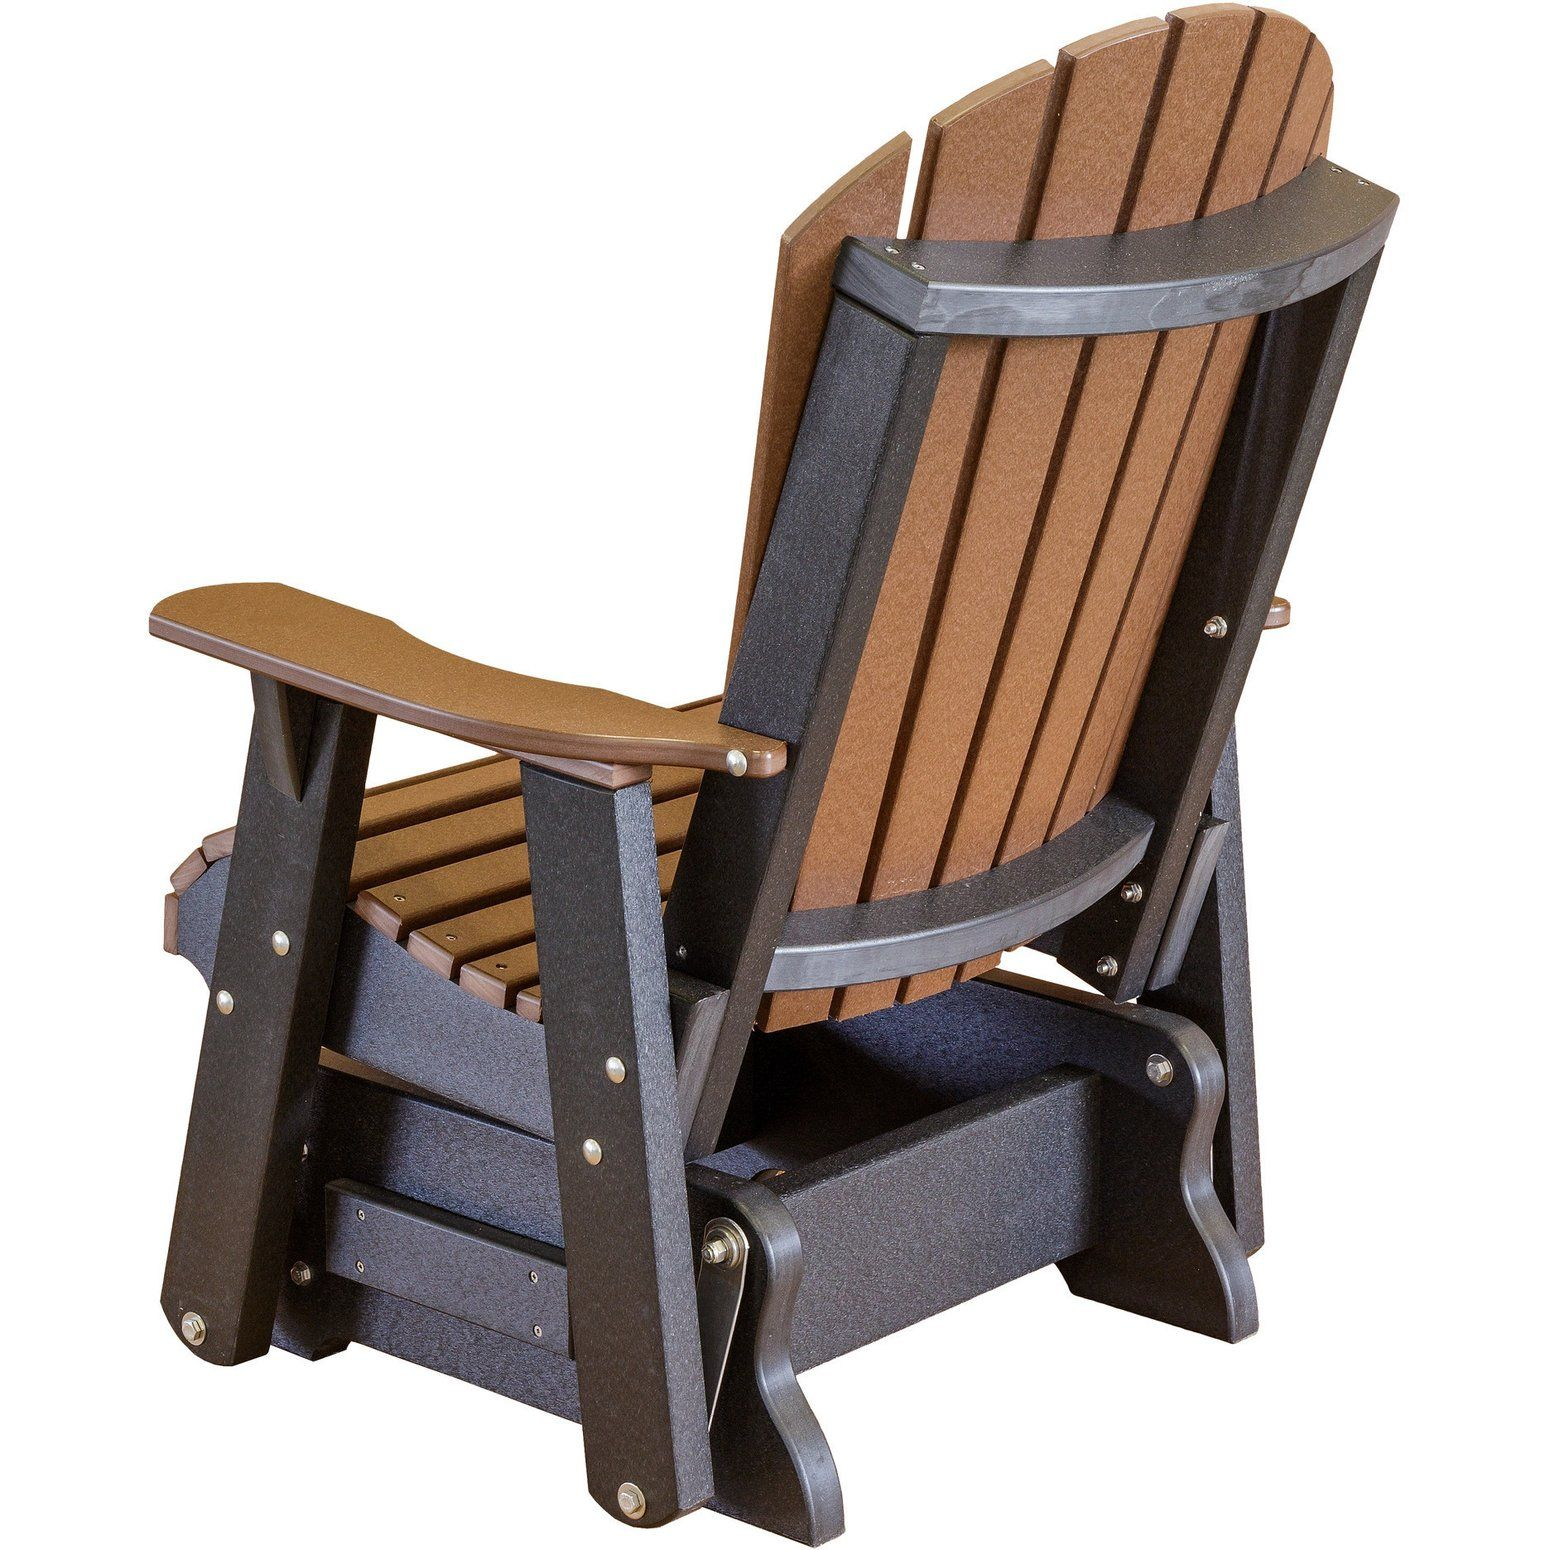 Wildridge Outdoor Recycled Plastic Heritage 2 Adirondack Glider Lead Time To Ship 6 To 8 Weeks In 2020 Diy Patio Furniture Glider Chair Rocking Chair Plans